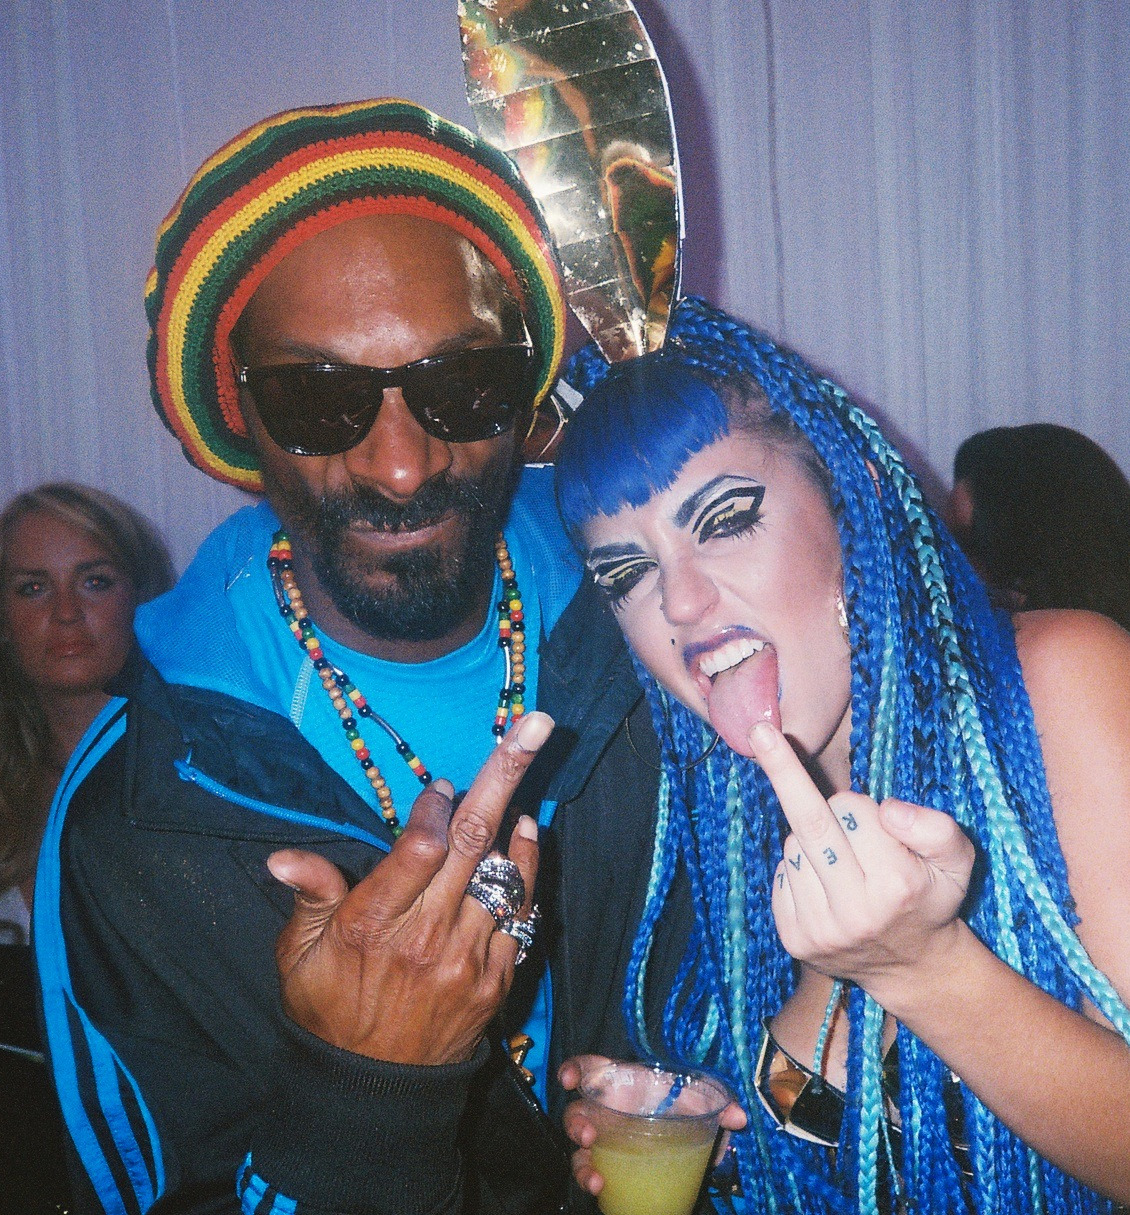 Snoop had a b-day party at the Playboy man$ion. I've never been….shit was CUUUUUTE!